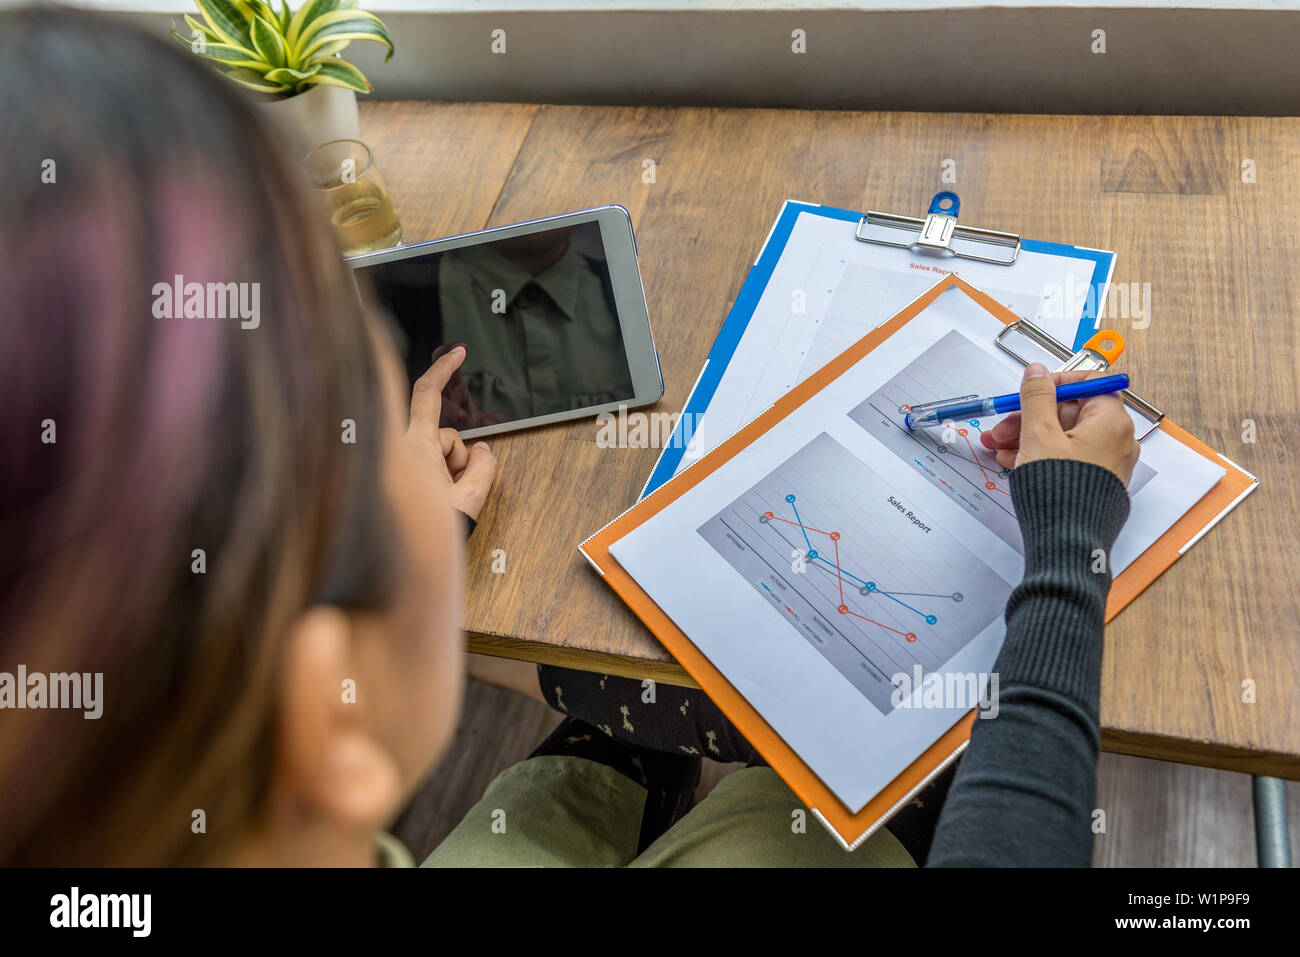 Top view of woman using tablet and pointing at diagram - Stock Image